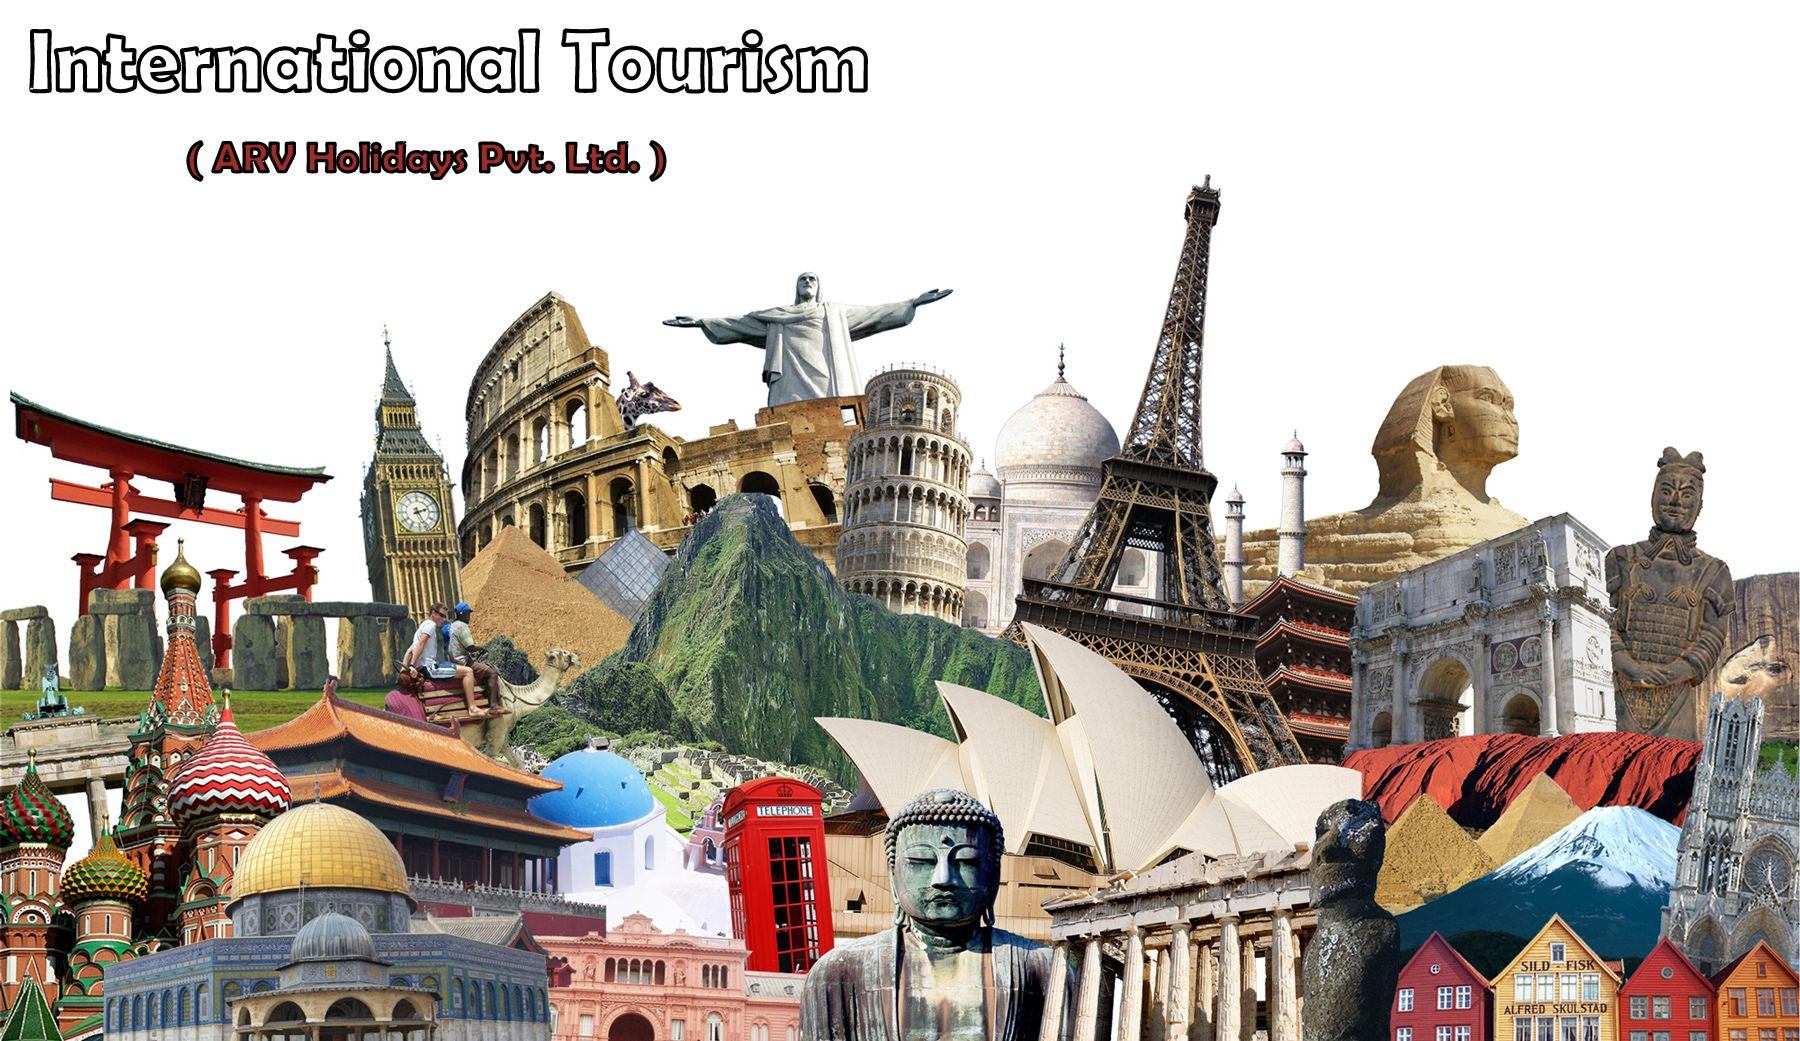 The beautiful foreign countries of Singapore, Dubai, Bali, Hong Kong, etc. are enriched with the beauty of beaches, greenery, wonderful things, etc. You can book Cheap & Best International Tour Packages to enjoy in these countries.  Read more :- http://goo.gl/k7eBUj